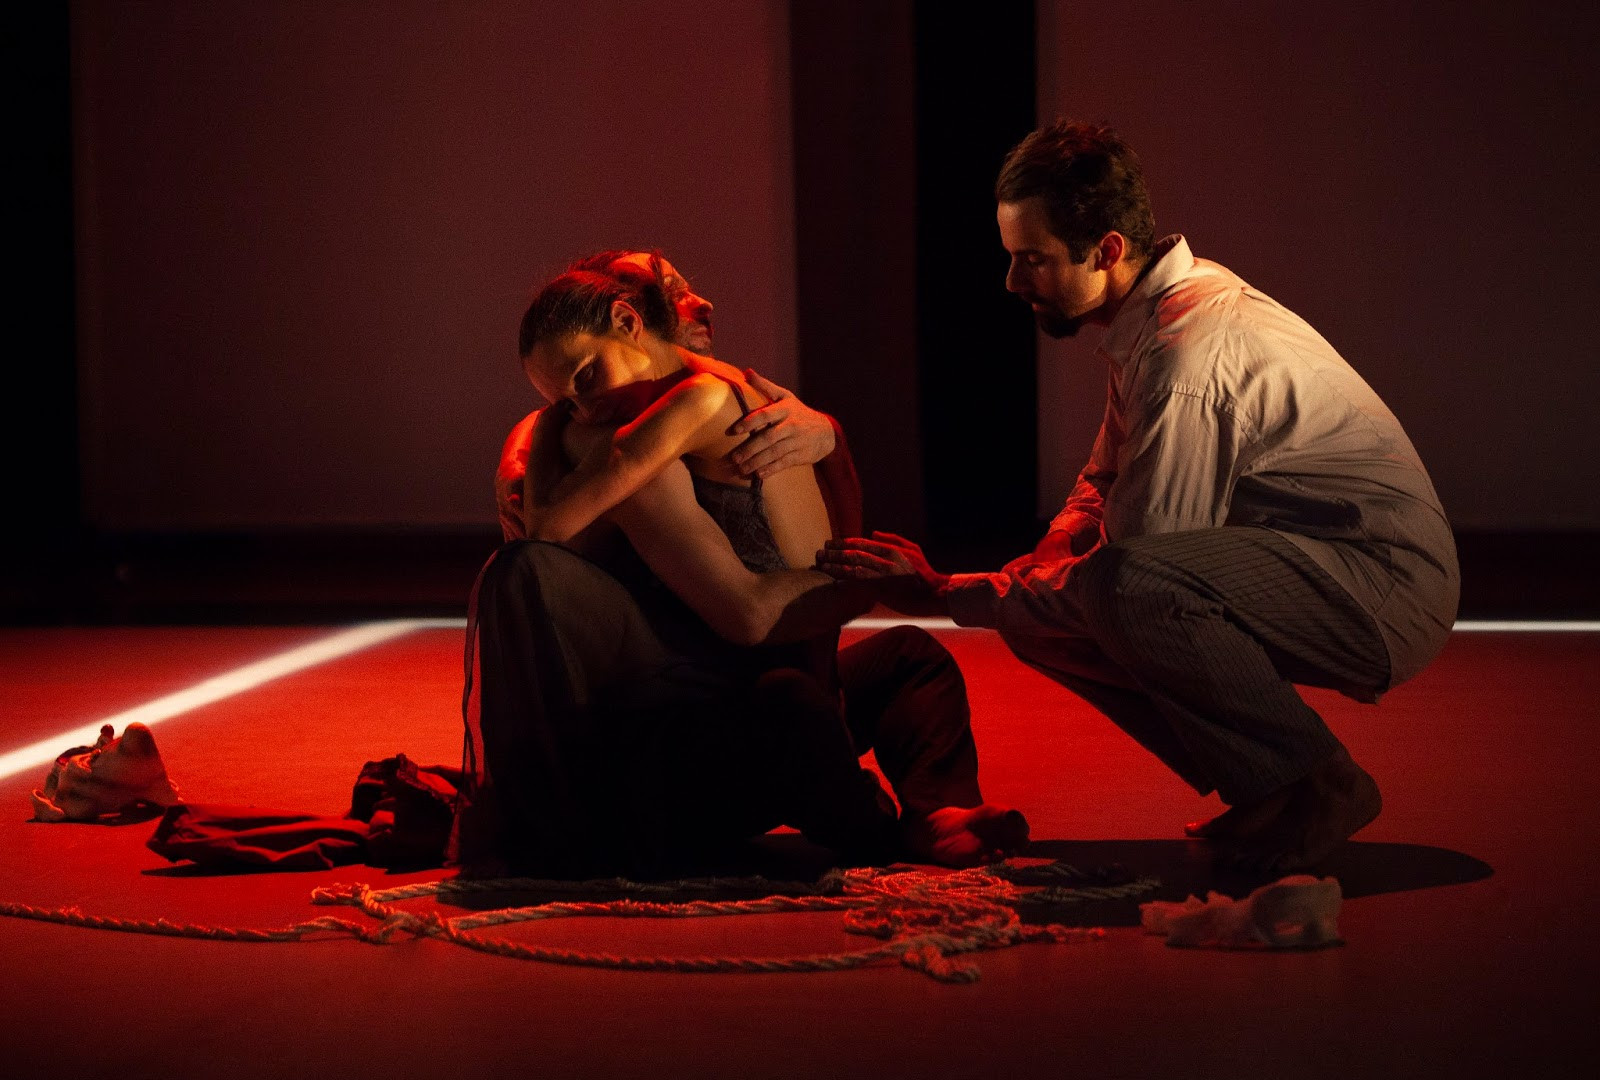 Histoire d'amour - BoucharDanse with Syvlie Bouchard and Brendan Wyatt